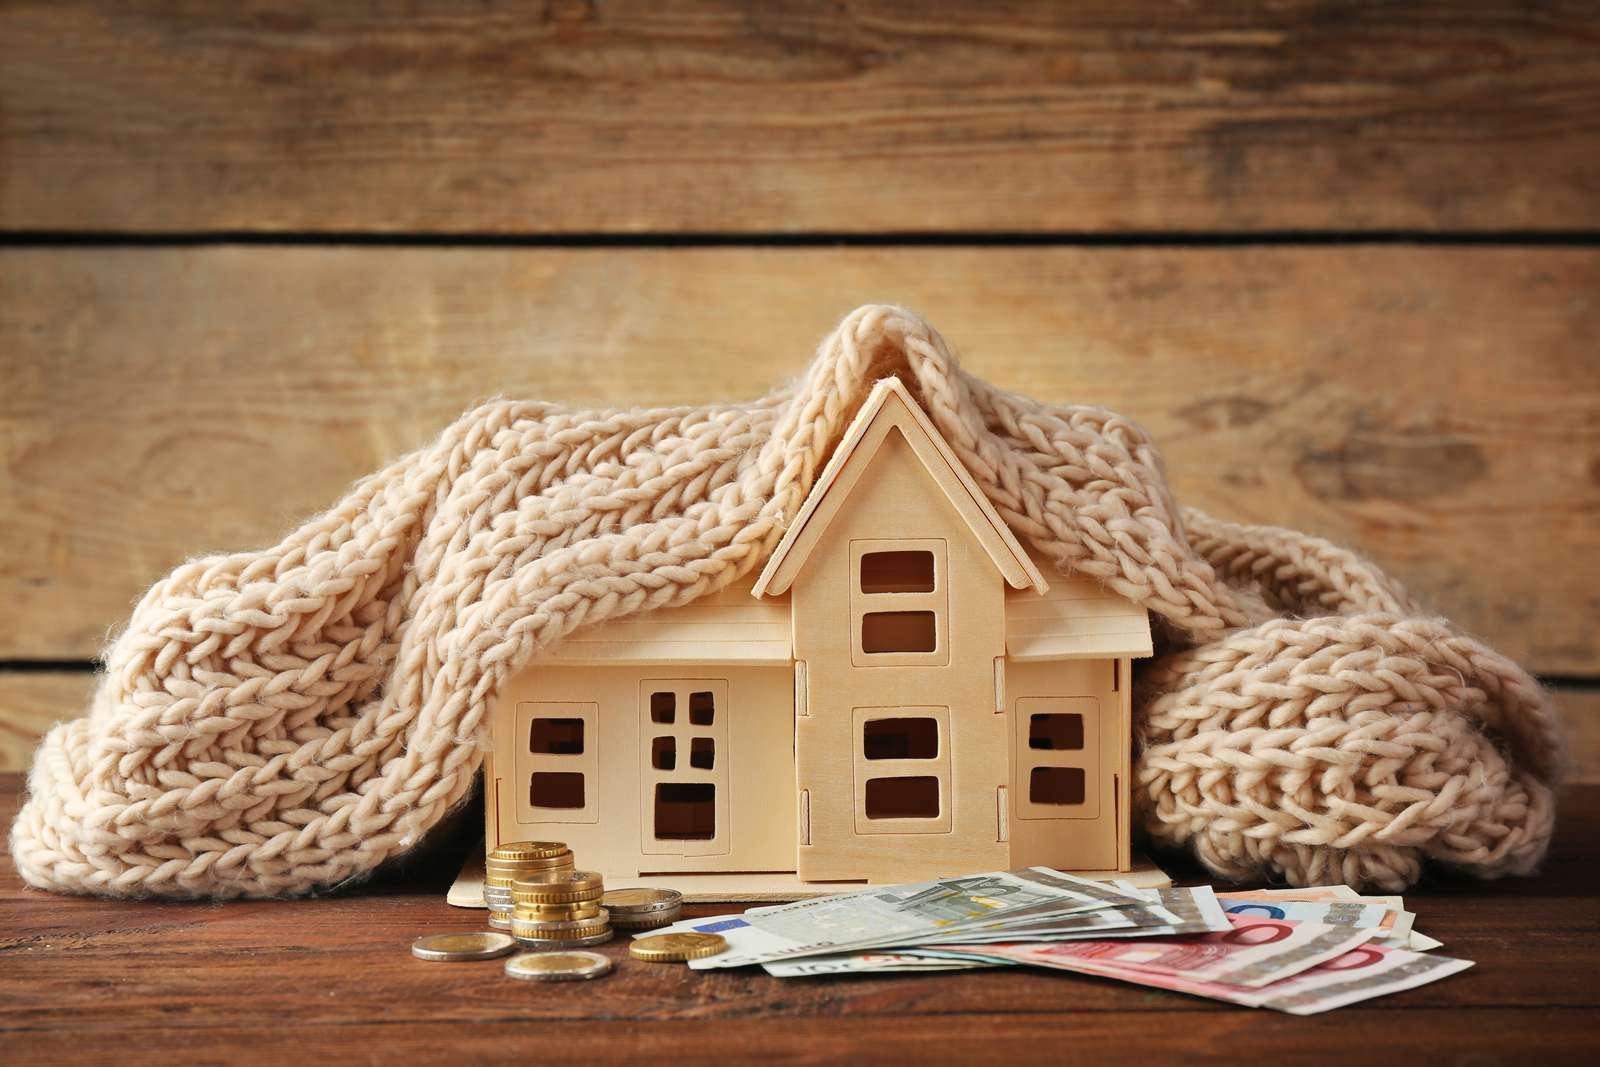 Plywood toy house with warm scarf and money on wooden background